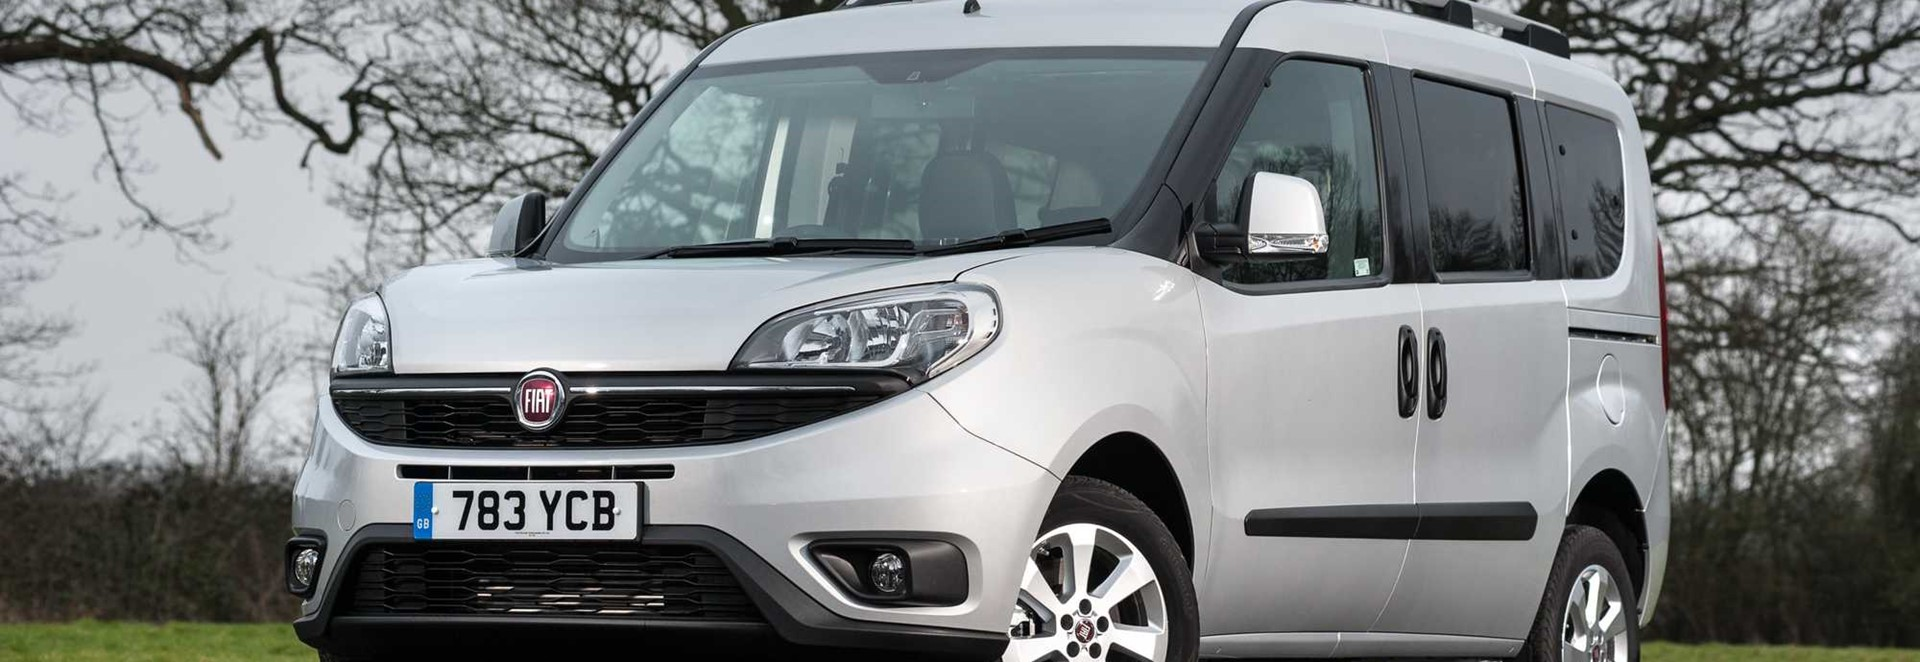 fiat doblo mpv review car keys. Black Bedroom Furniture Sets. Home Design Ideas